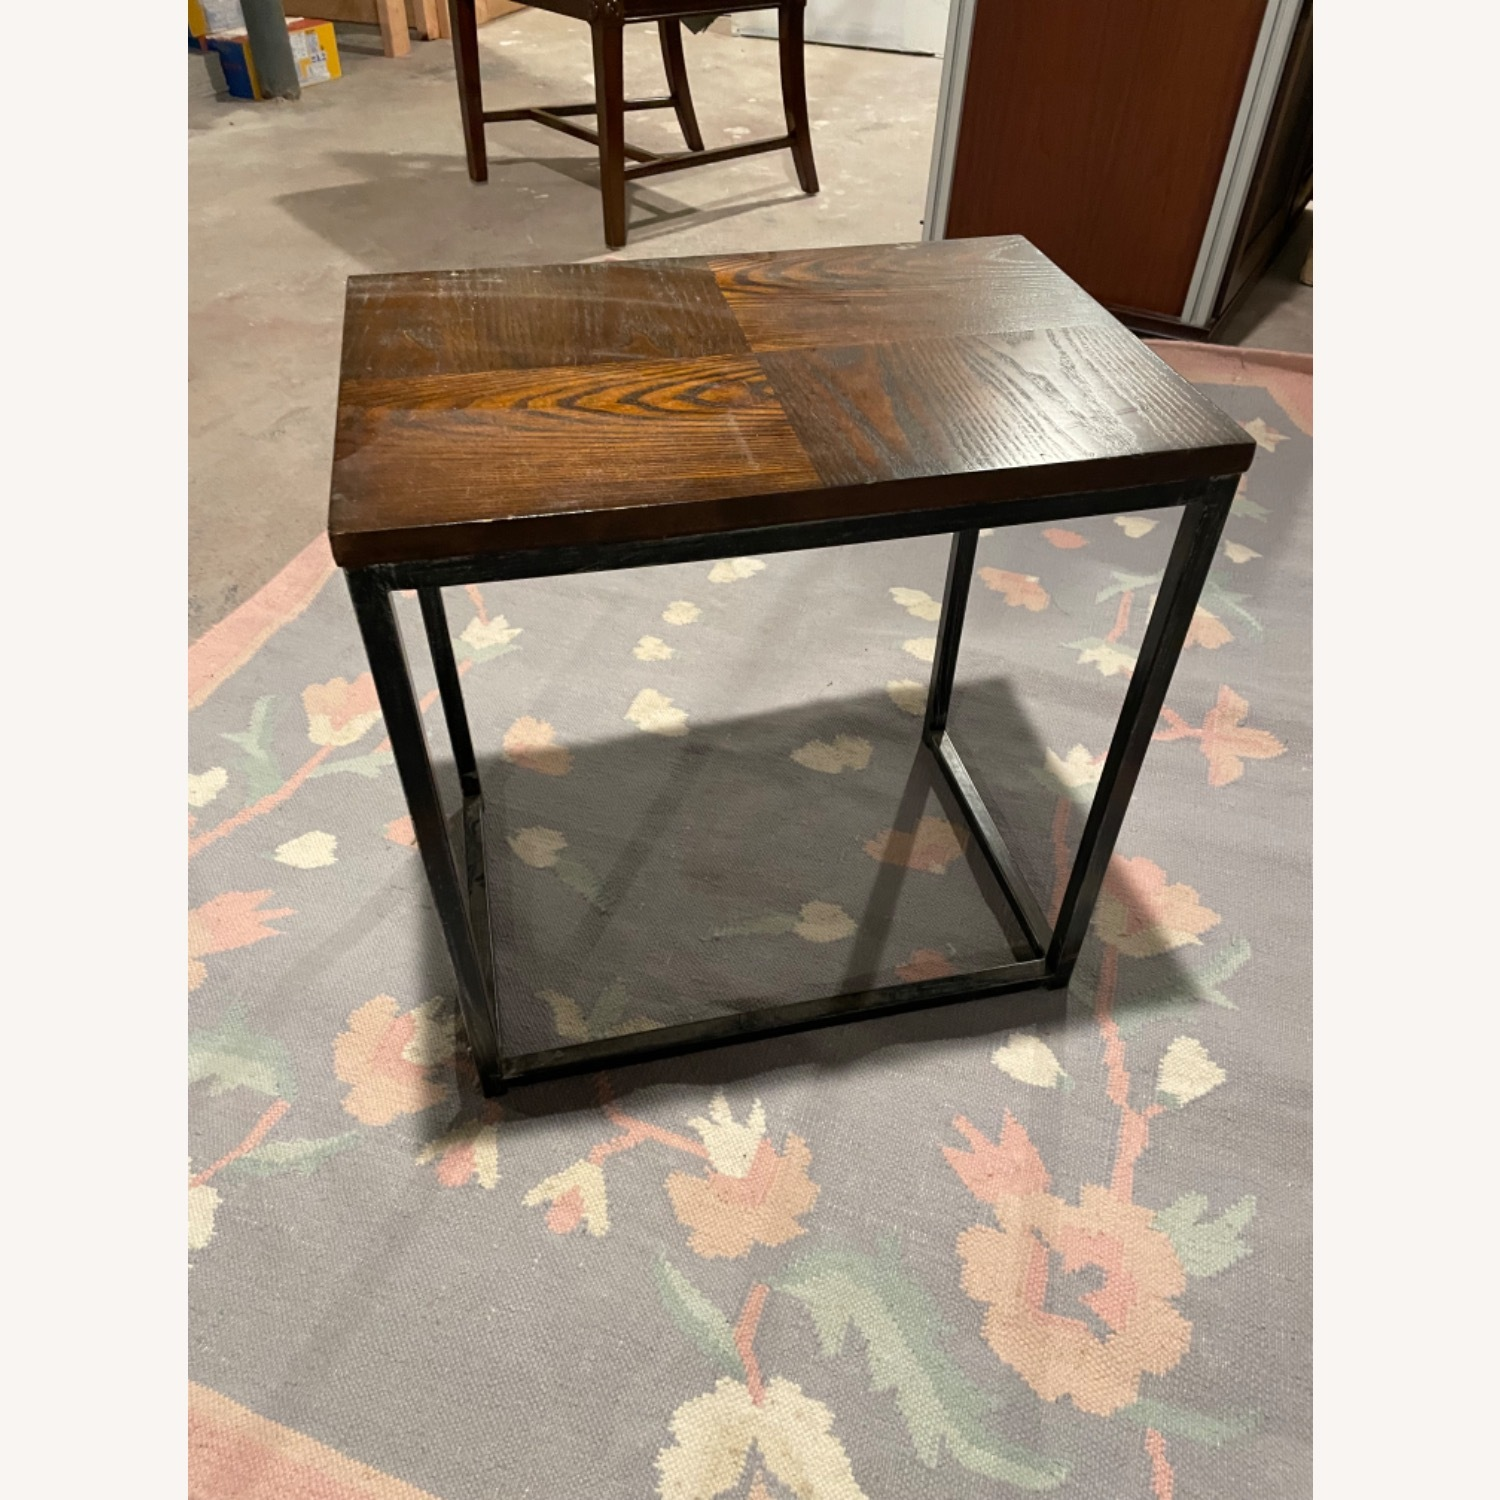 Wood Top Table with Metal Frame - image-1